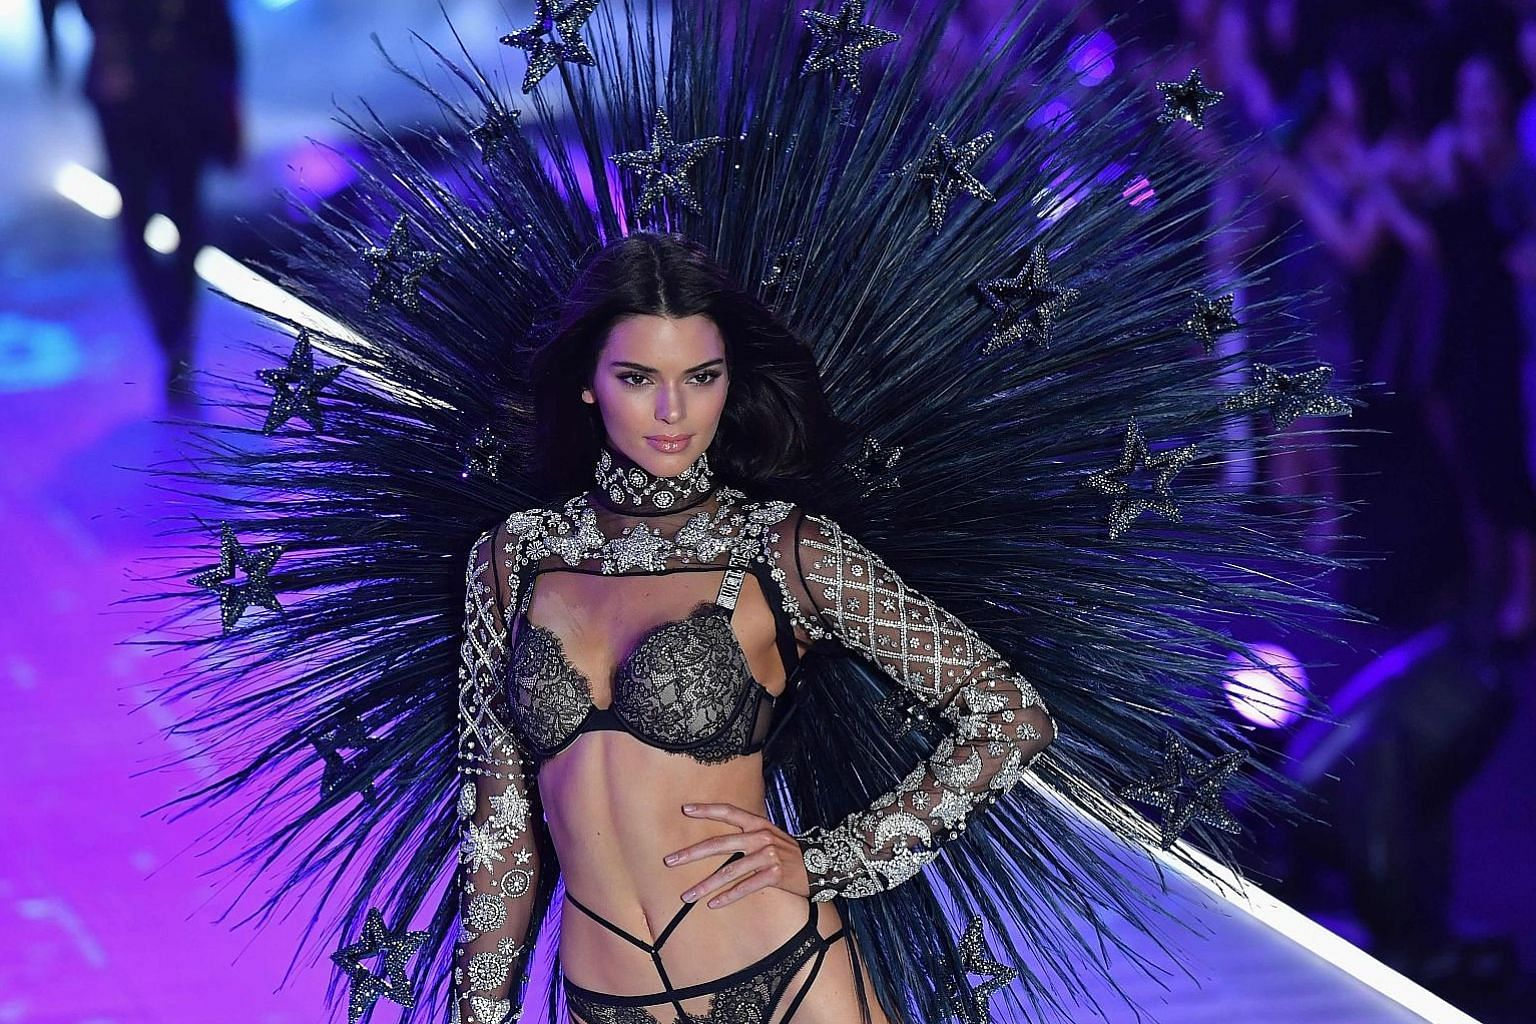 Kendall Jenner at the Victoria's Secret Fashion Show last week in New York City. Profits, sales and market share of the company have all fallen over the past year as natural cleavage comes into fashion.